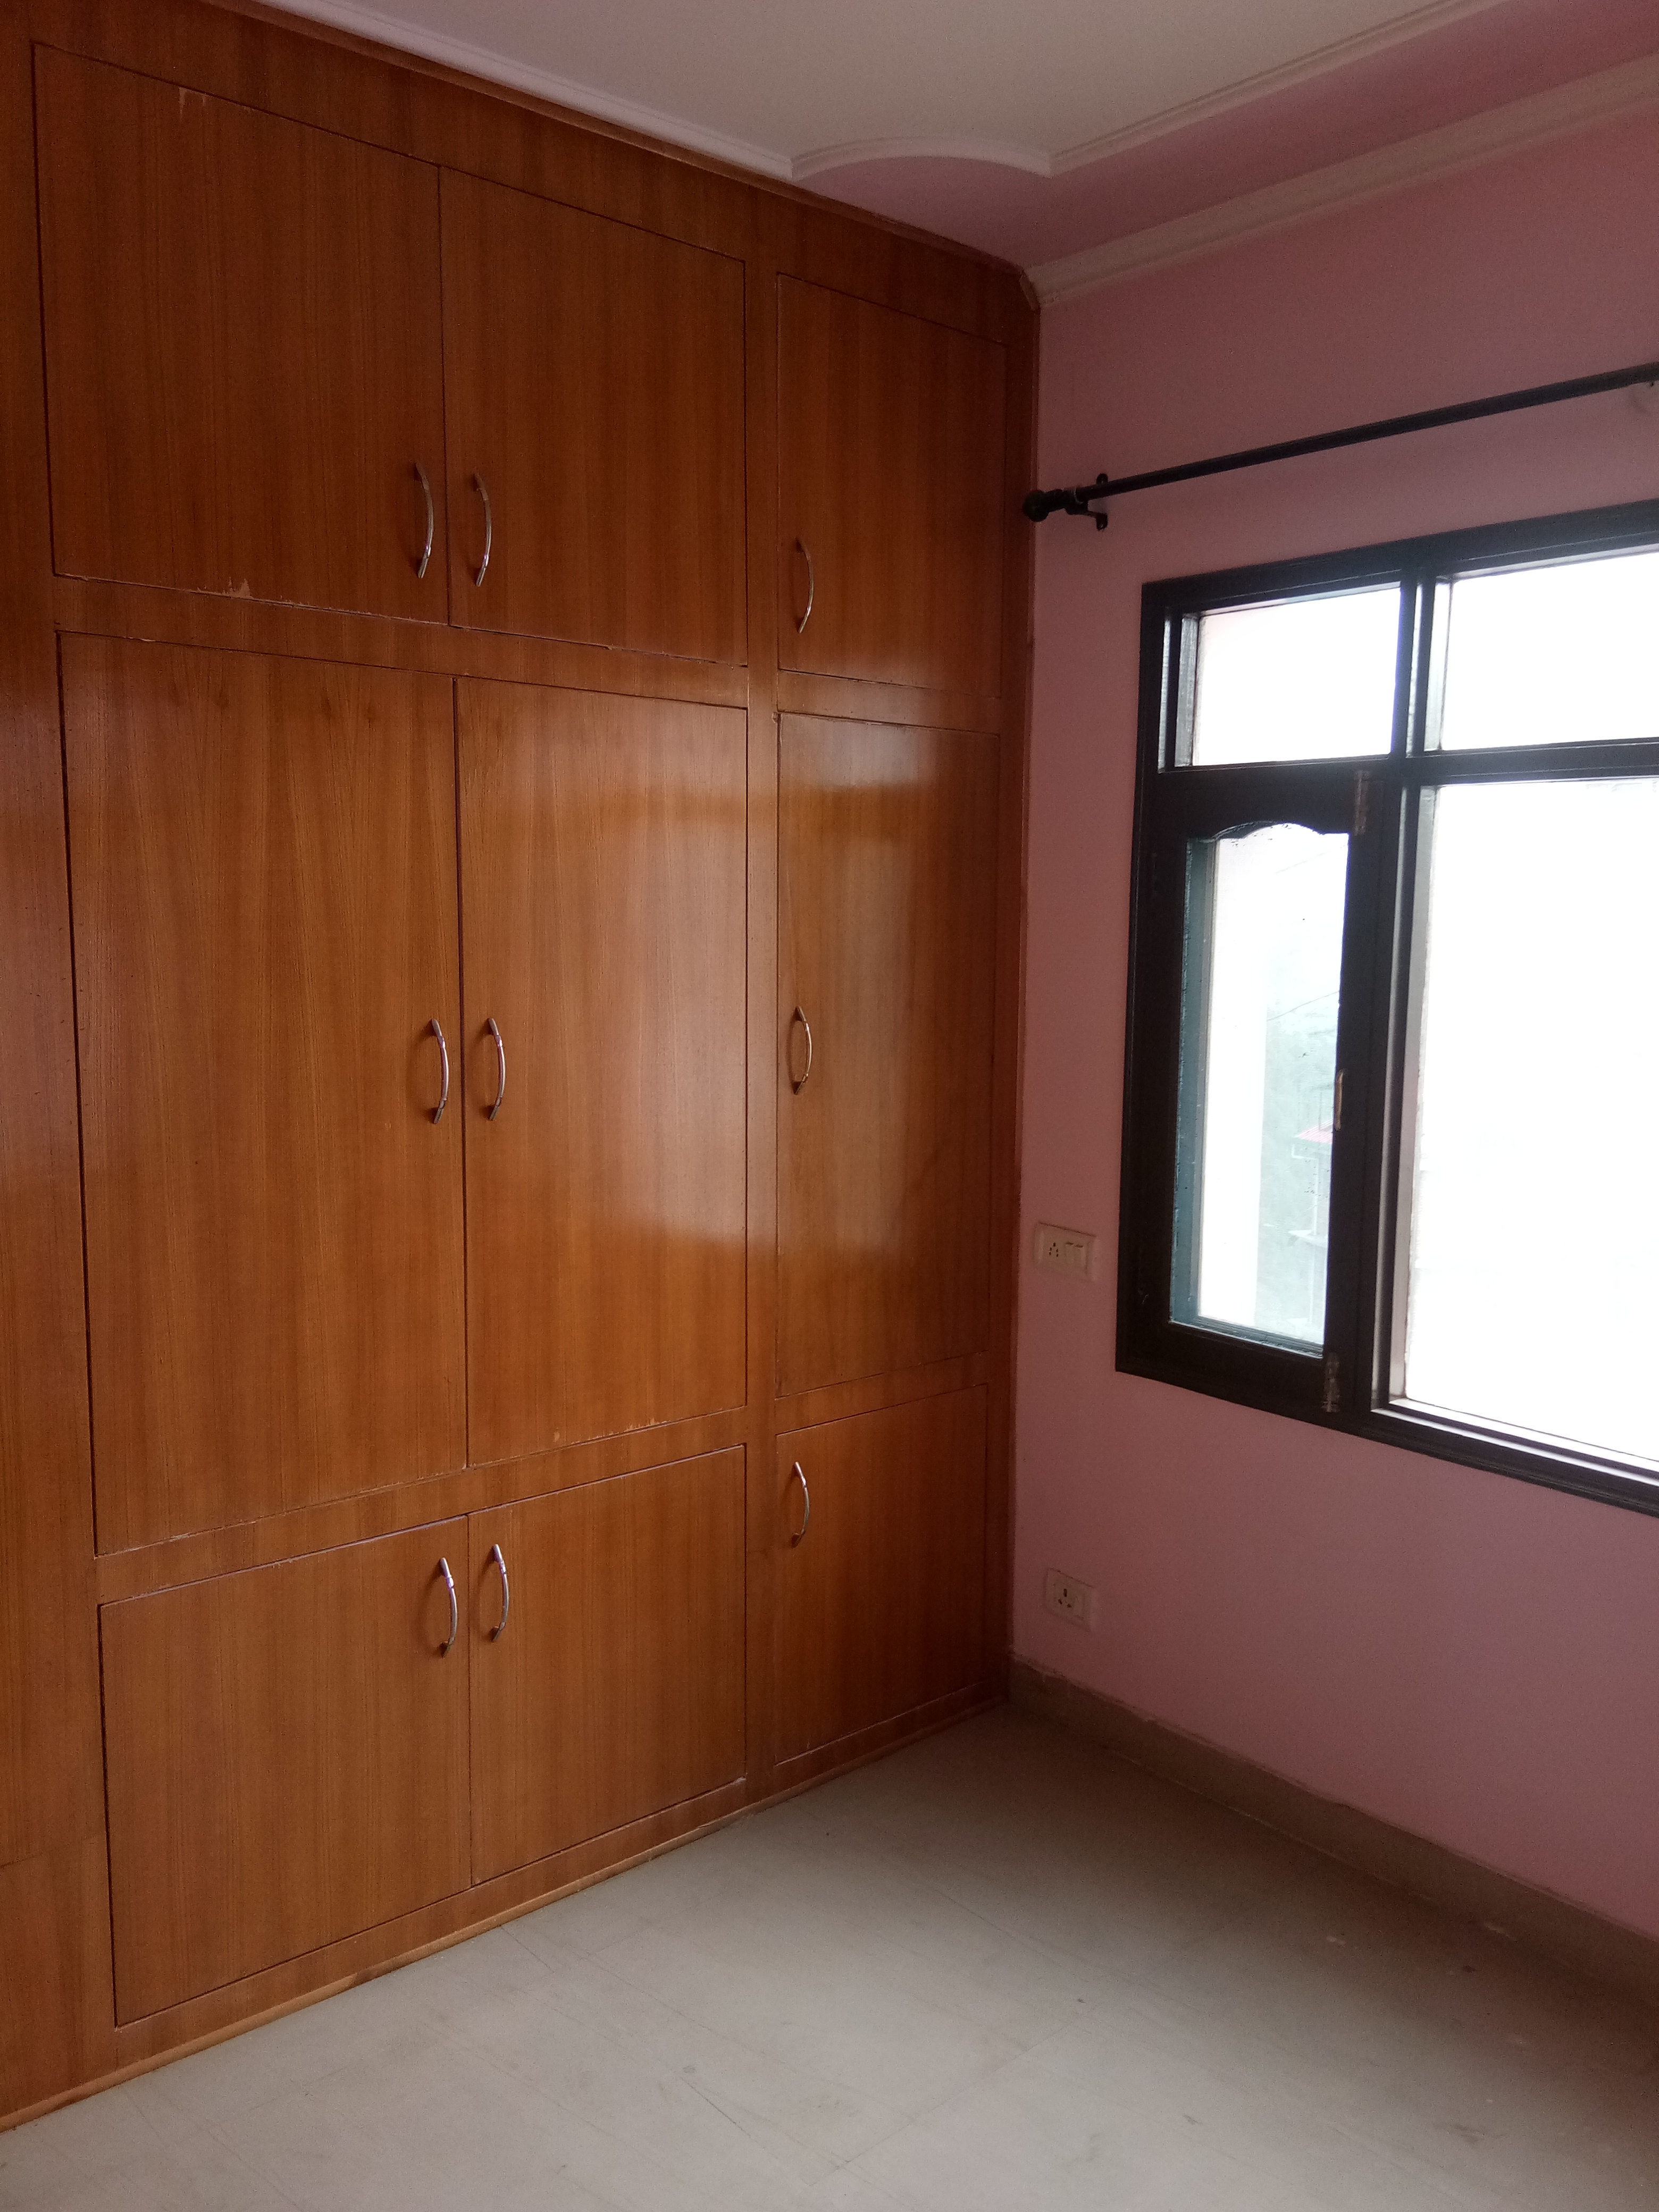 3 Bhk flat for sale at kyari Near Tutikandi shimla —– Drive in —- Covered area – 1200 sqf —- 3 km link from Main Road — Sunny and Beautiful View — Price – 48 Lakhs